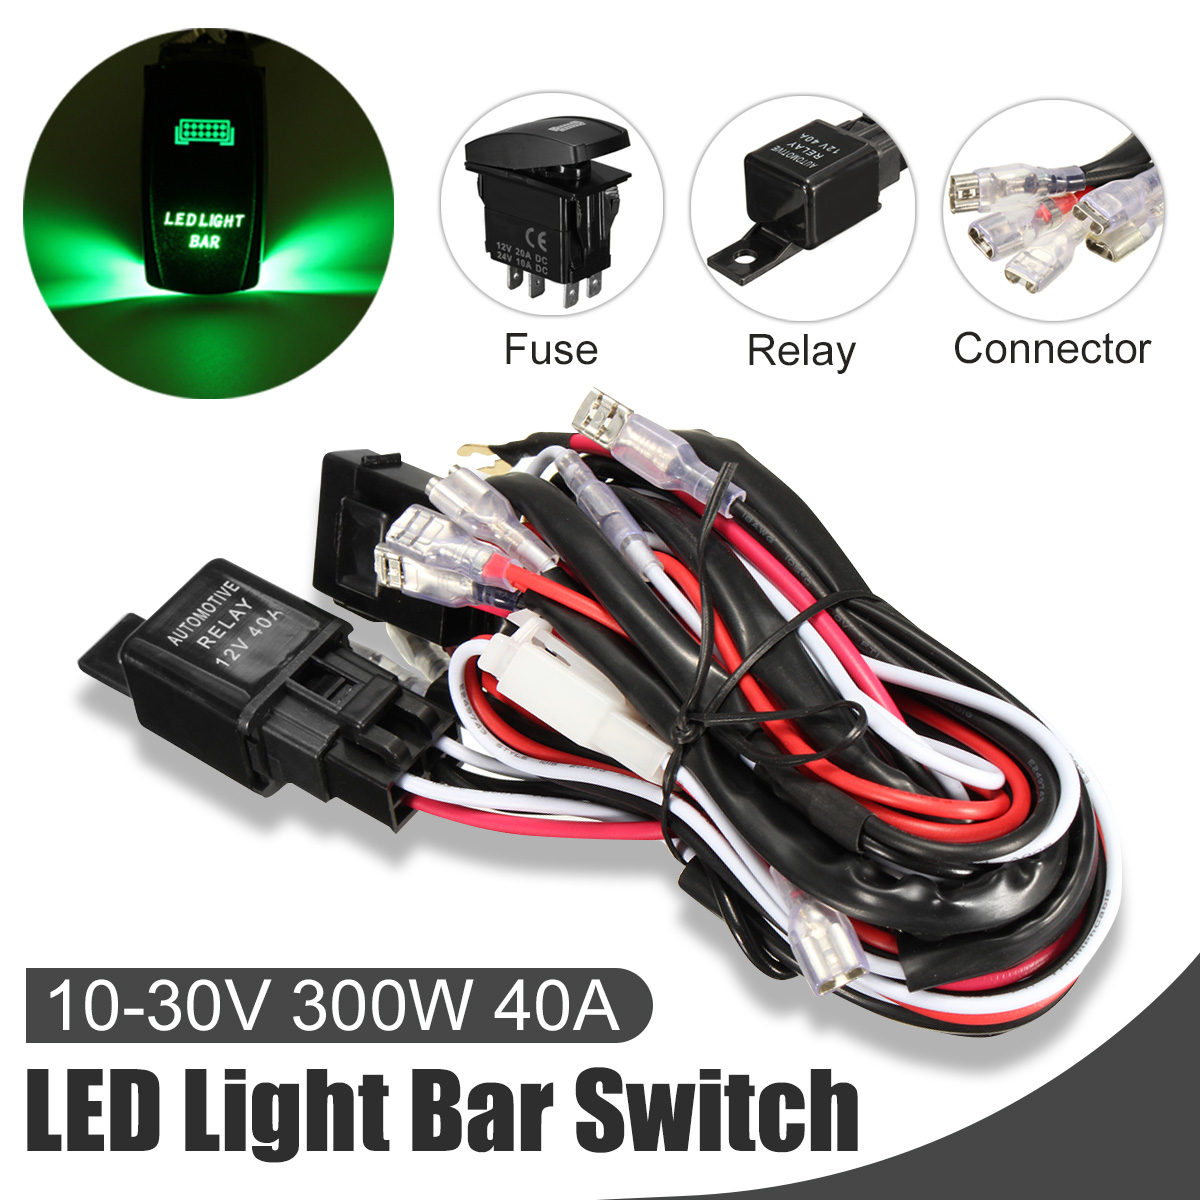 hight resolution of car laser rocker switch wiring harness led light bar 5 pin relay fuse green install kit set universal automortive auto vehicle suv truck van led 12v 40a us